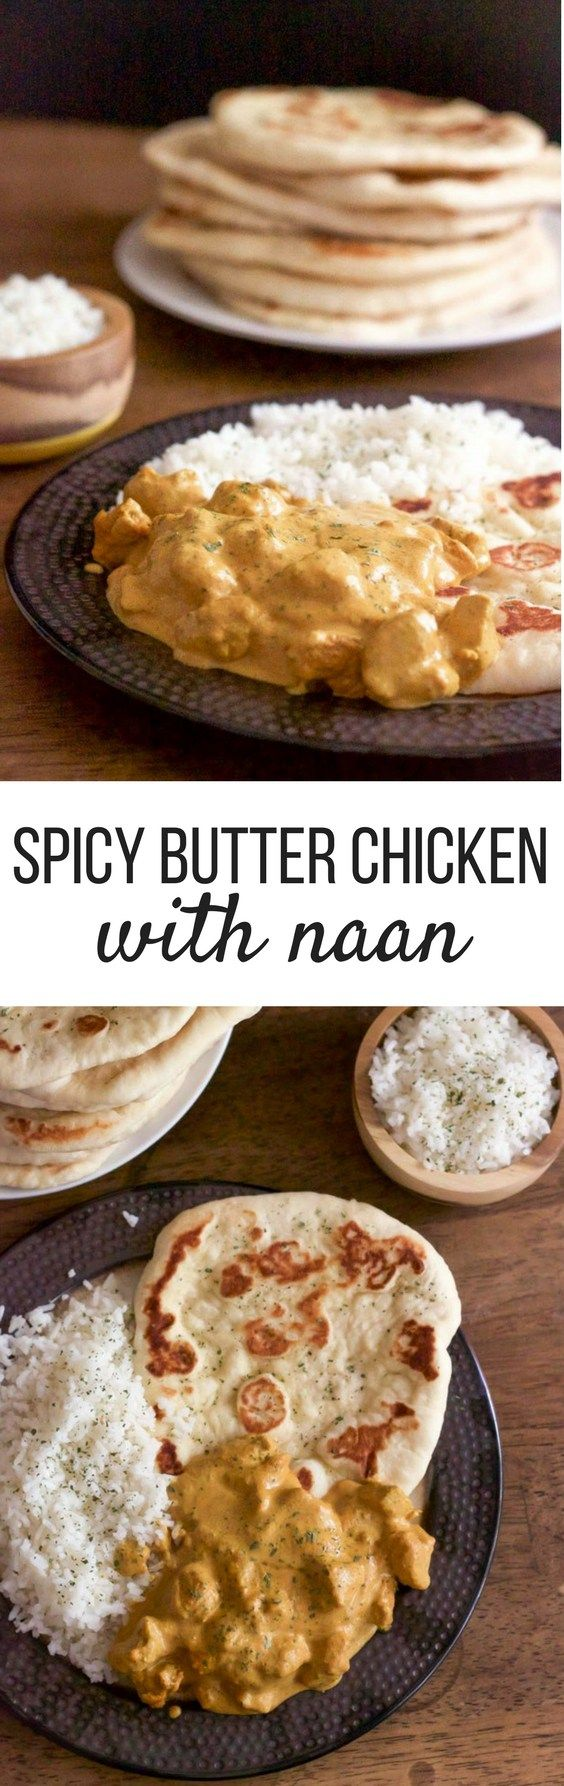 Creamy Butter Chicken - No need to simmer this curry for hours, this recipe is ready in less than 40 minutes! | wanderzestblog.com